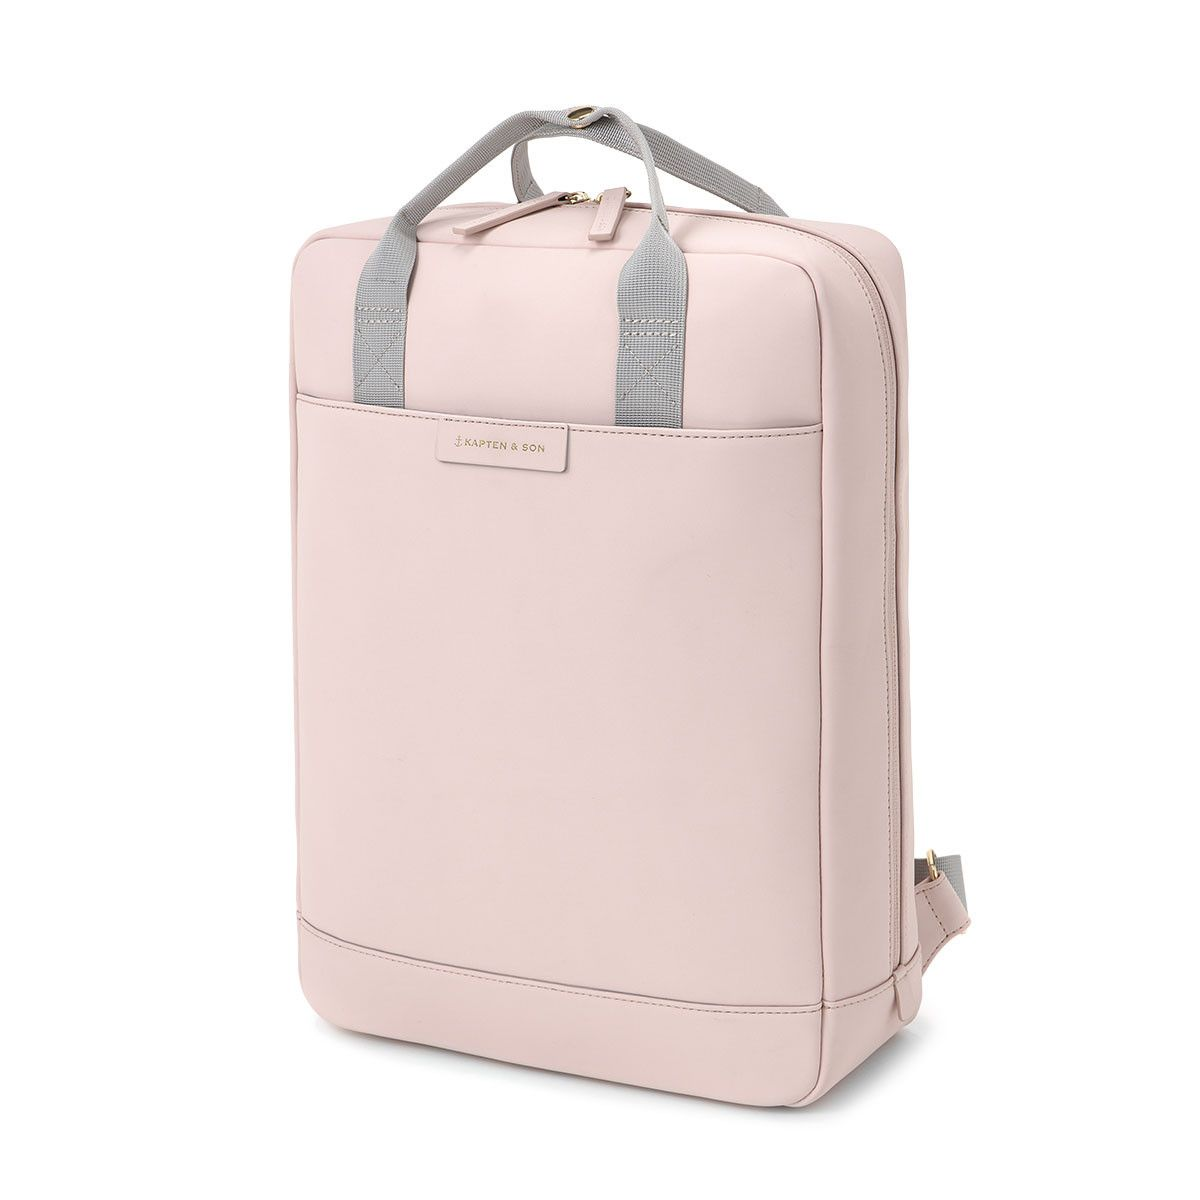 c22f9358402b8b Spacious pink backpack with gray handles  waterproof tech-material ✓ two  outer pockets ✓ padded 13 inch laptop pocket ✓ Buy now!